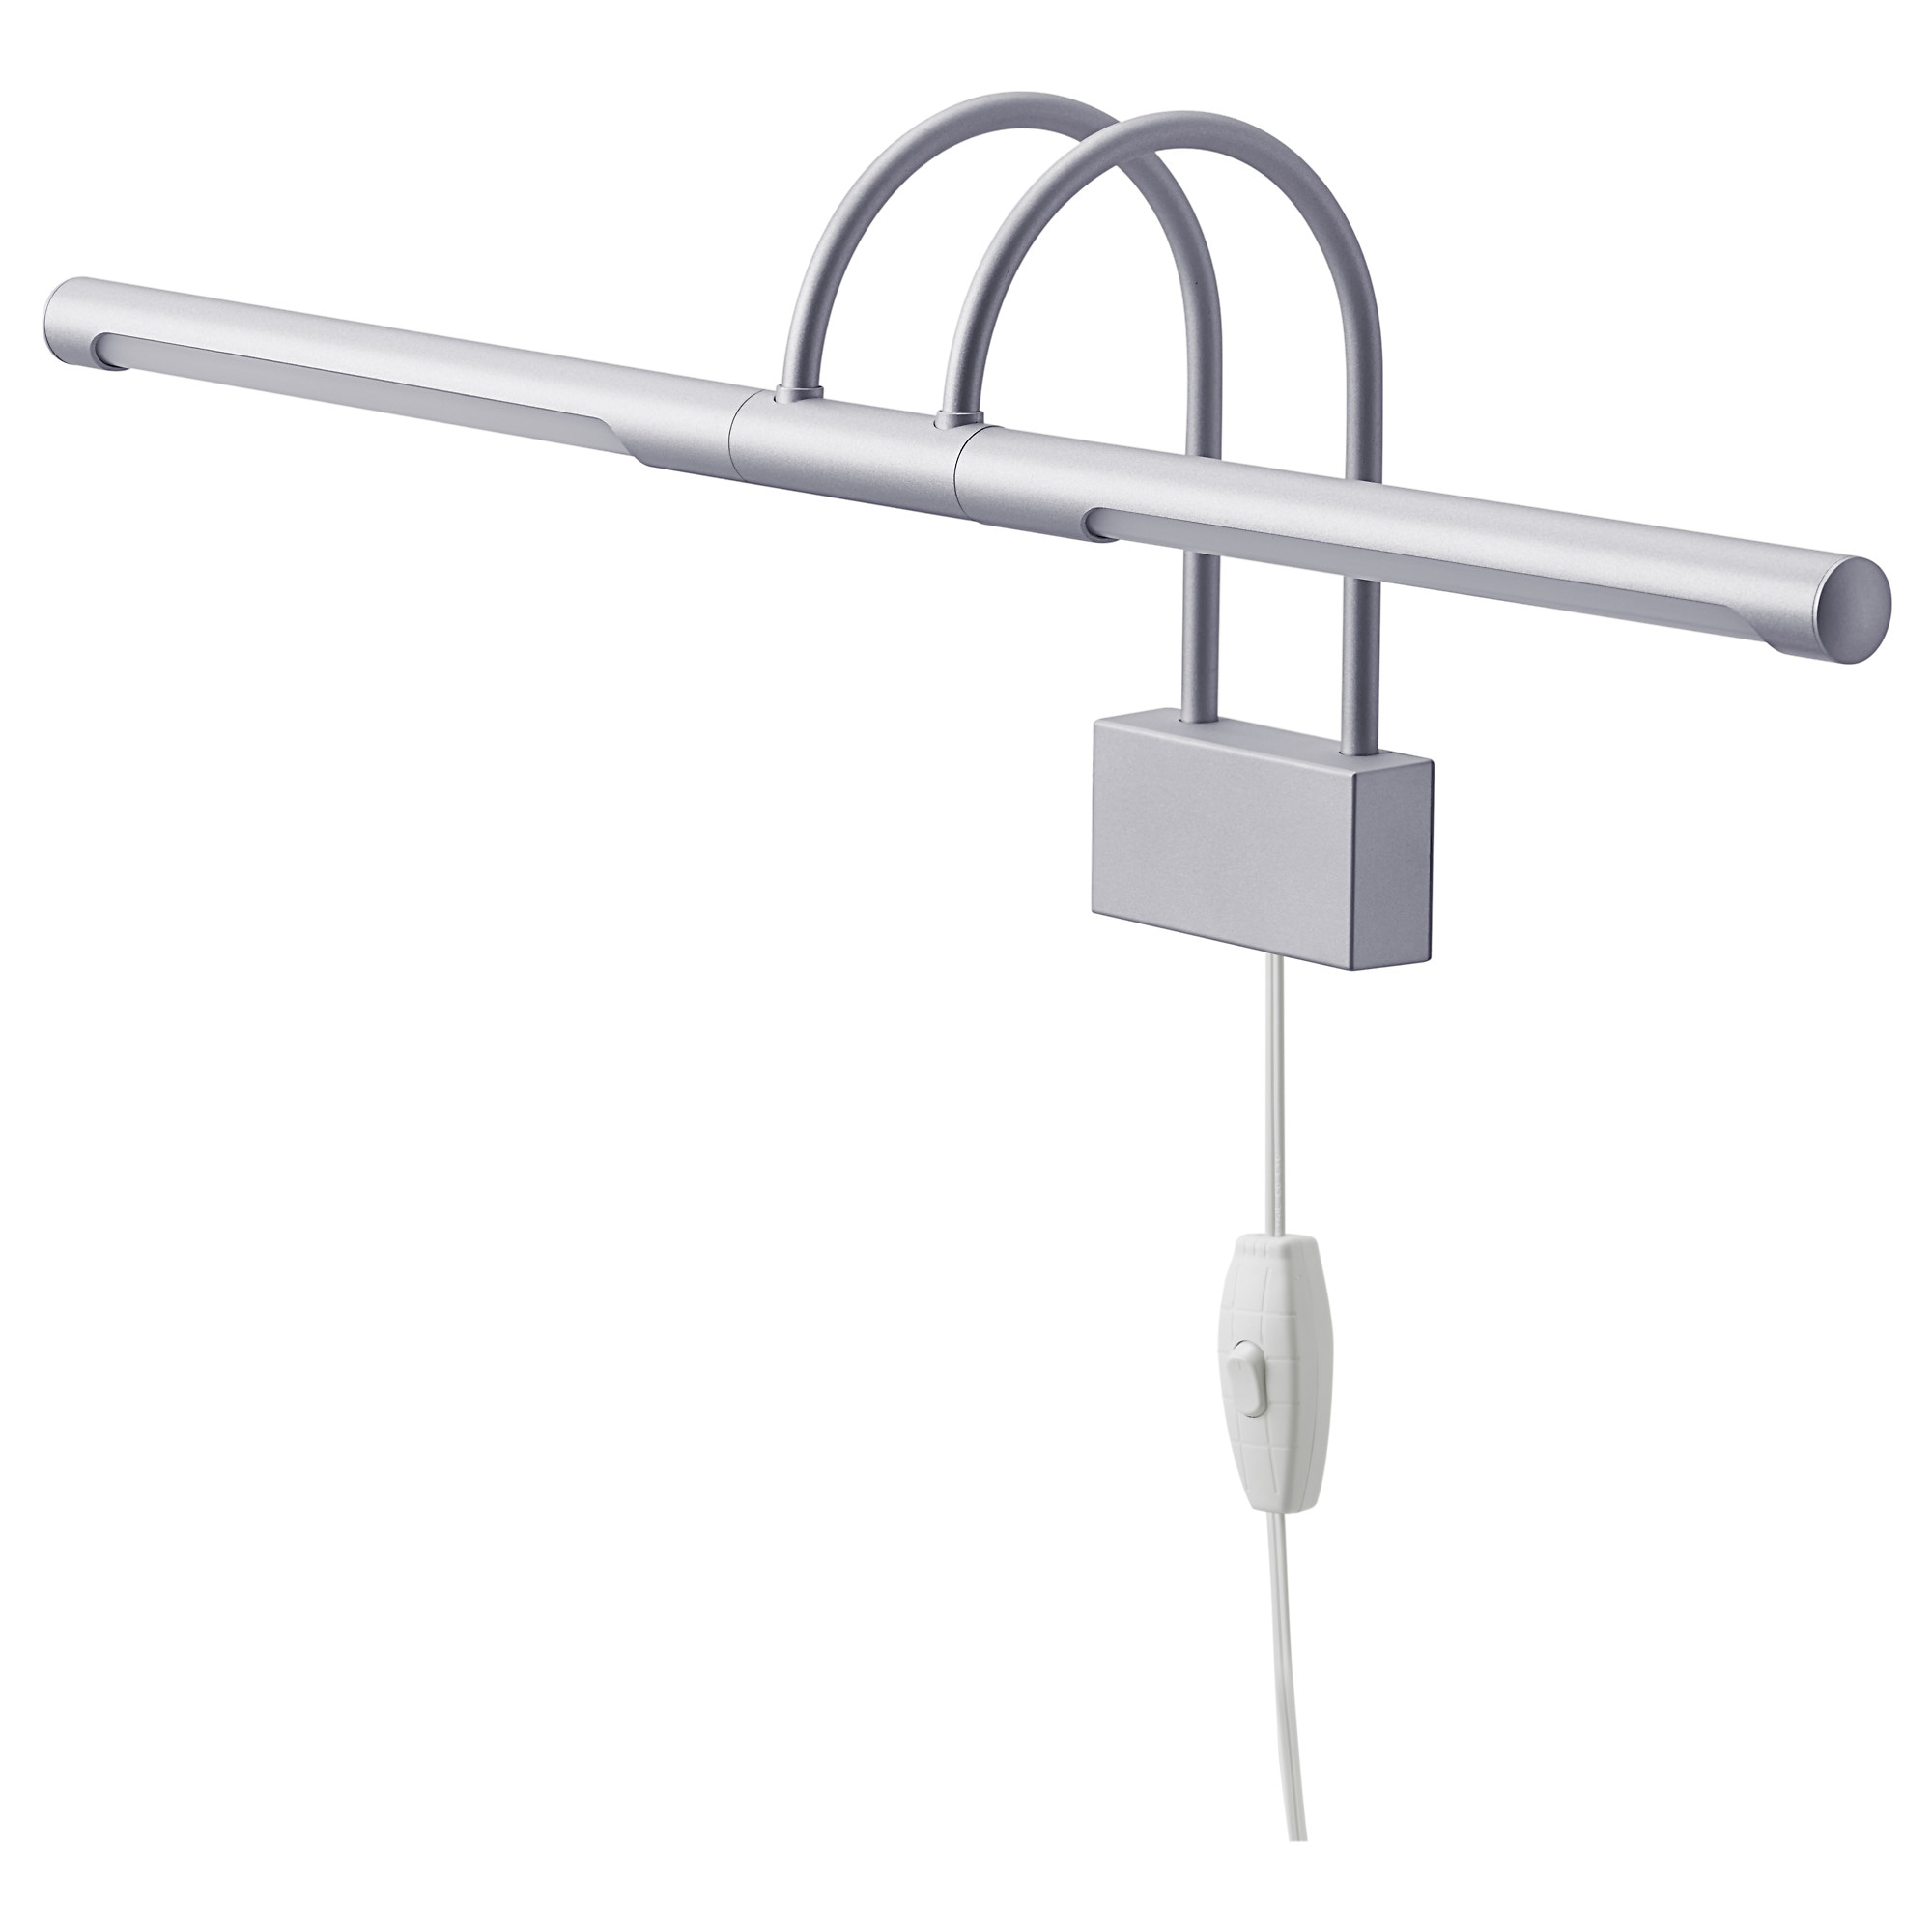 Wall Hanging Desk Lamp : Wall Mounted Desk Lamp Ikea - Hostgarcia